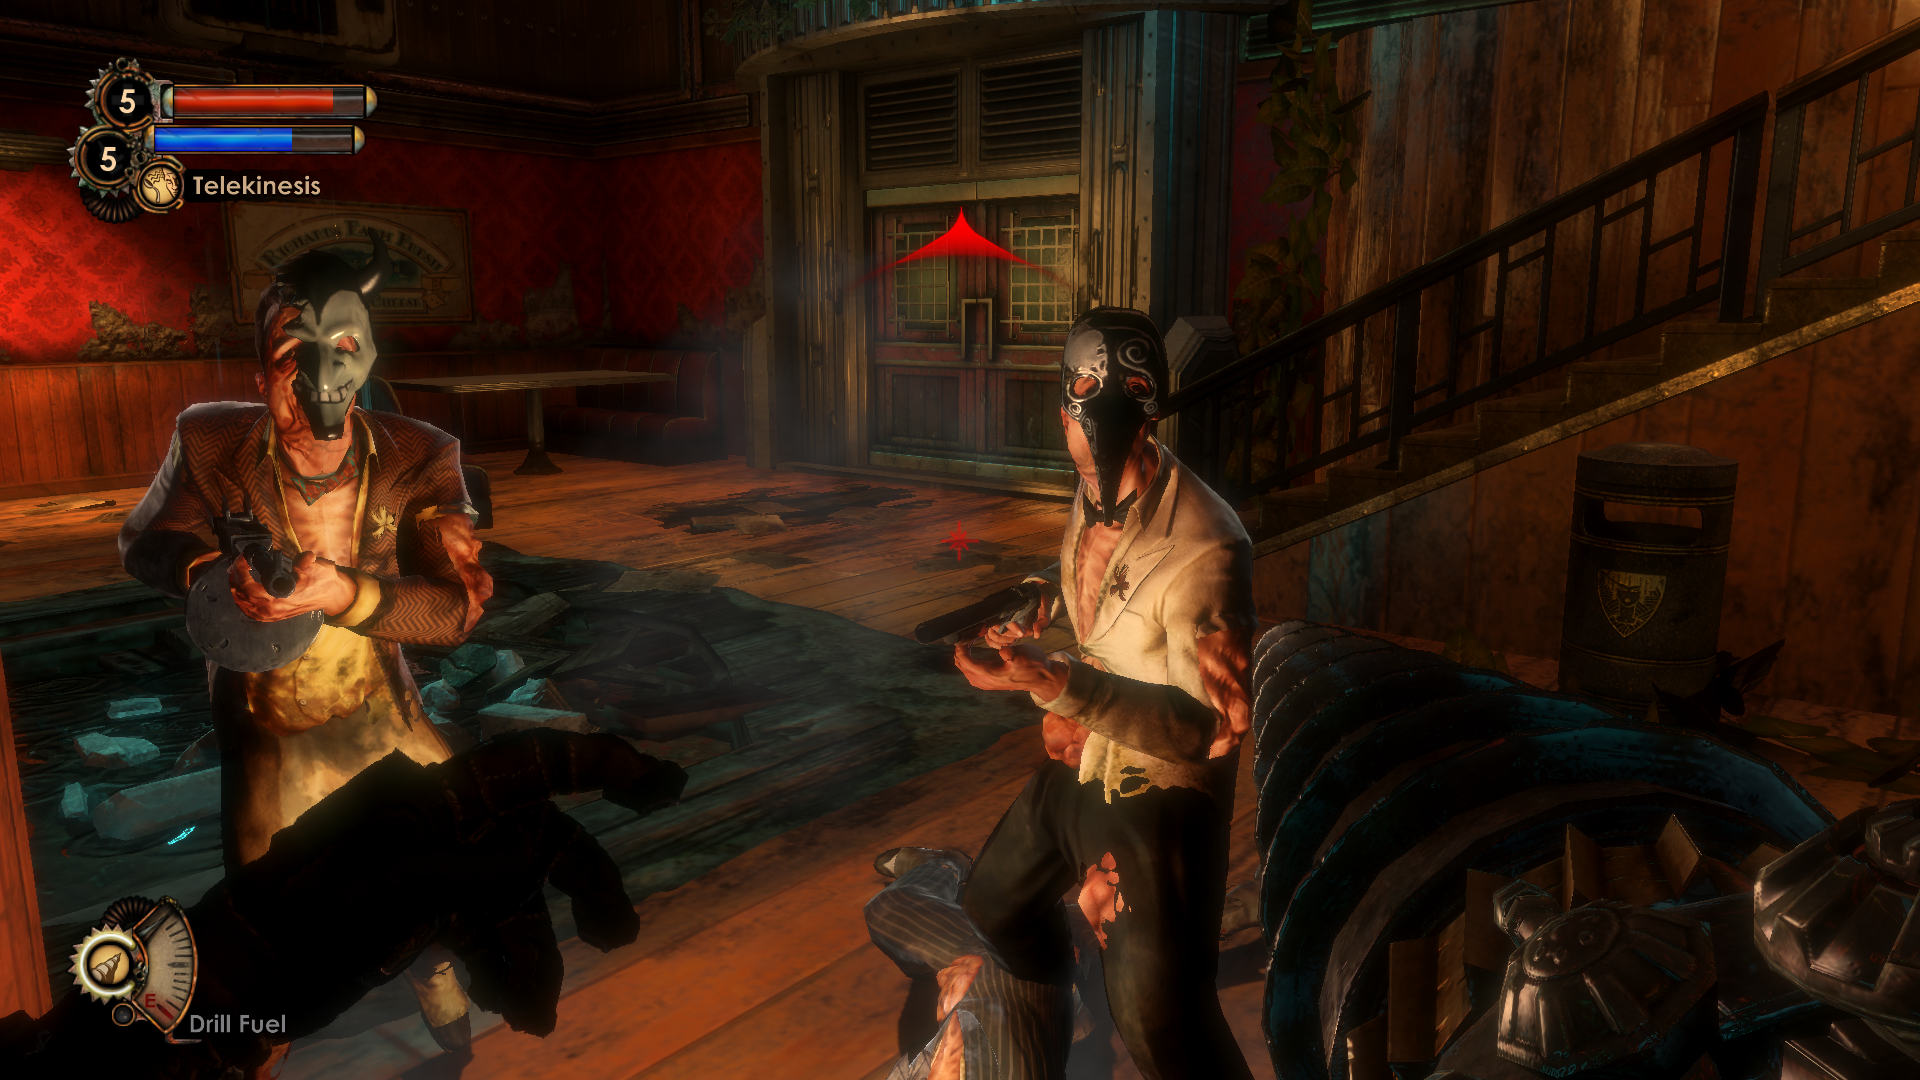 Before they see and attack you, Splicers make noise, indicating their presence to the player